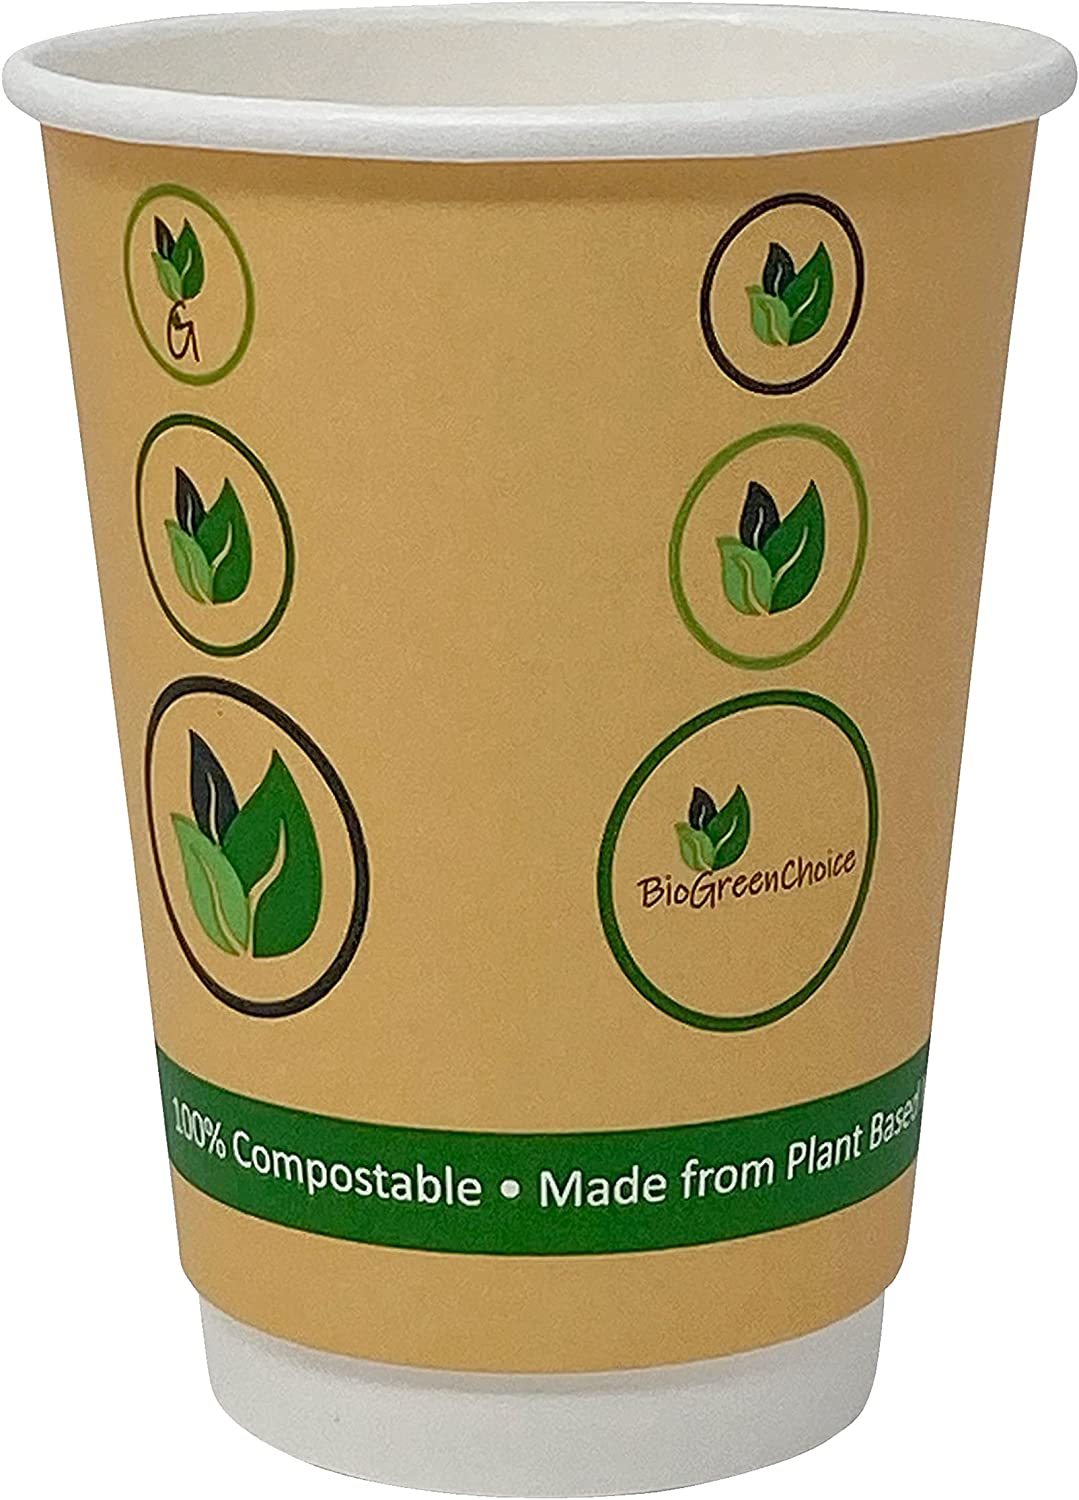 BioGreenChoice 12 oz. Compostable Eco-friendly Cup Special Campaign Seattle Mall Bio with Hot